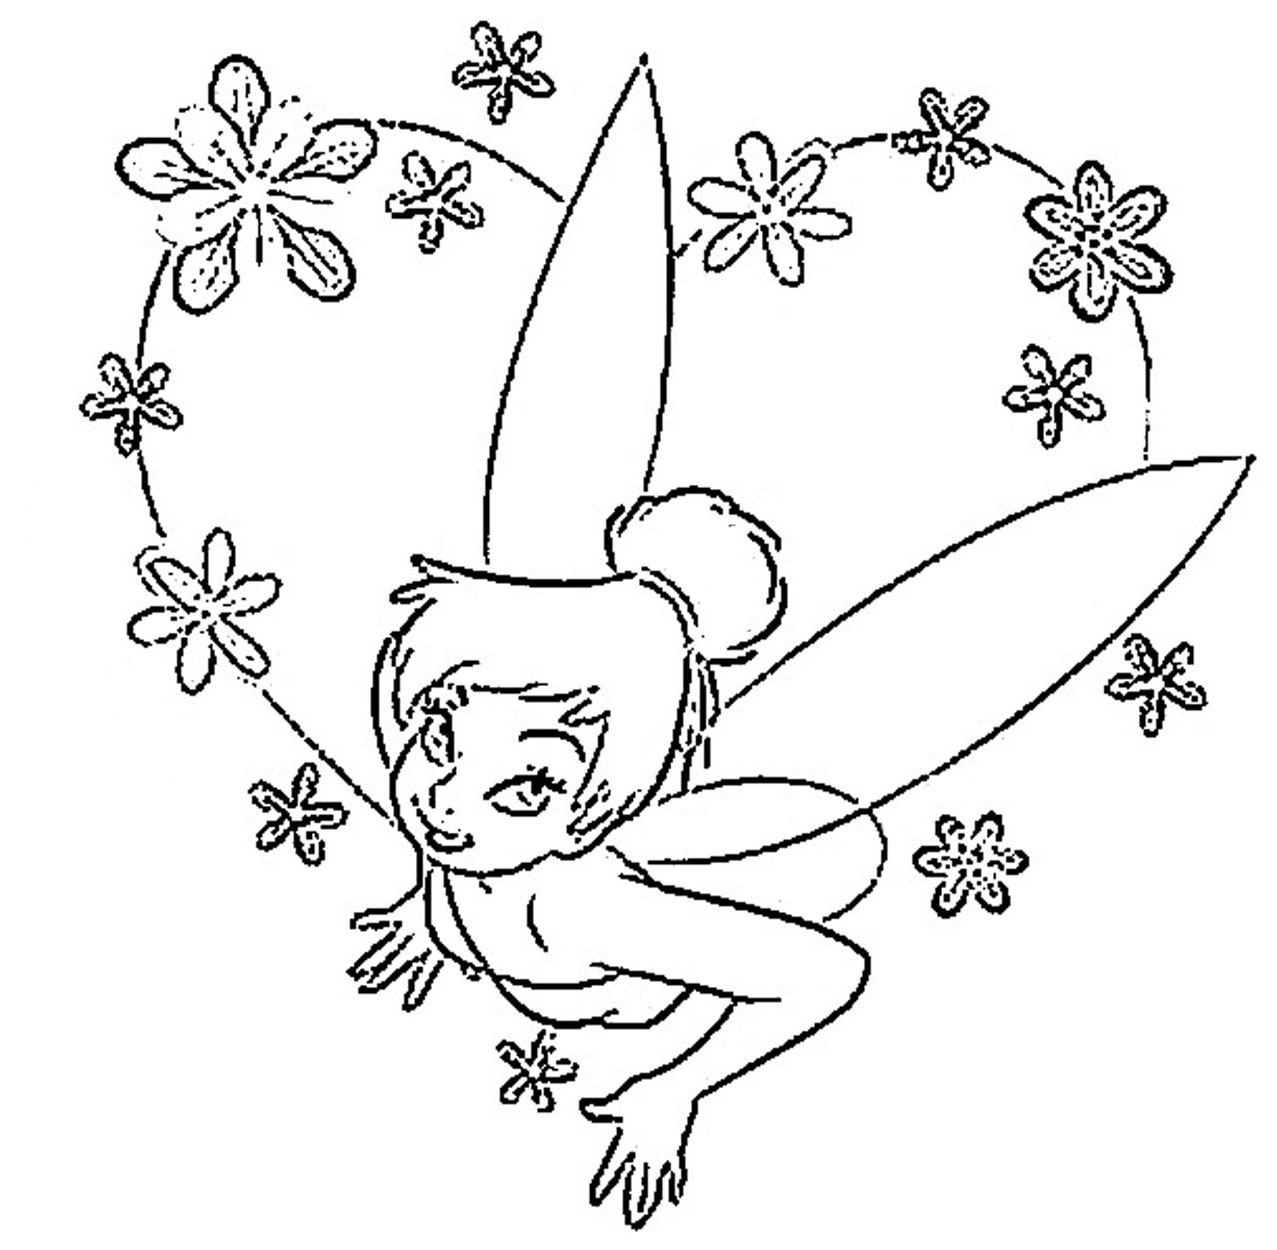 i love tinkerbell coloring pages - photo#49